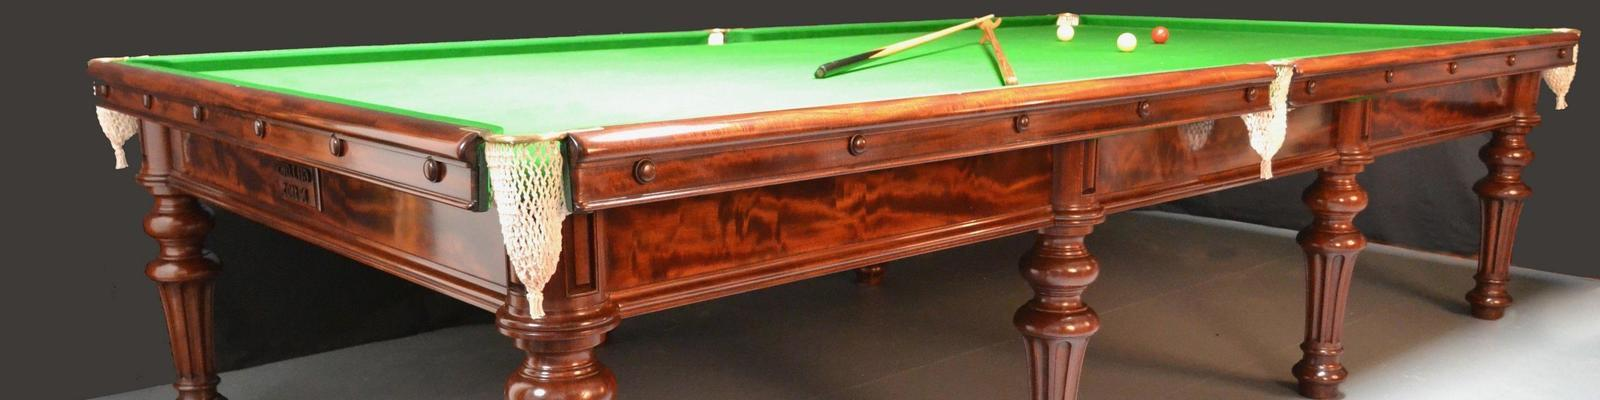 Billiard snooker pool table light of arts and crafts form circa billiard snooker pool table light of arts and crafts form circa 1900 at 1stdibs greentooth Image collections